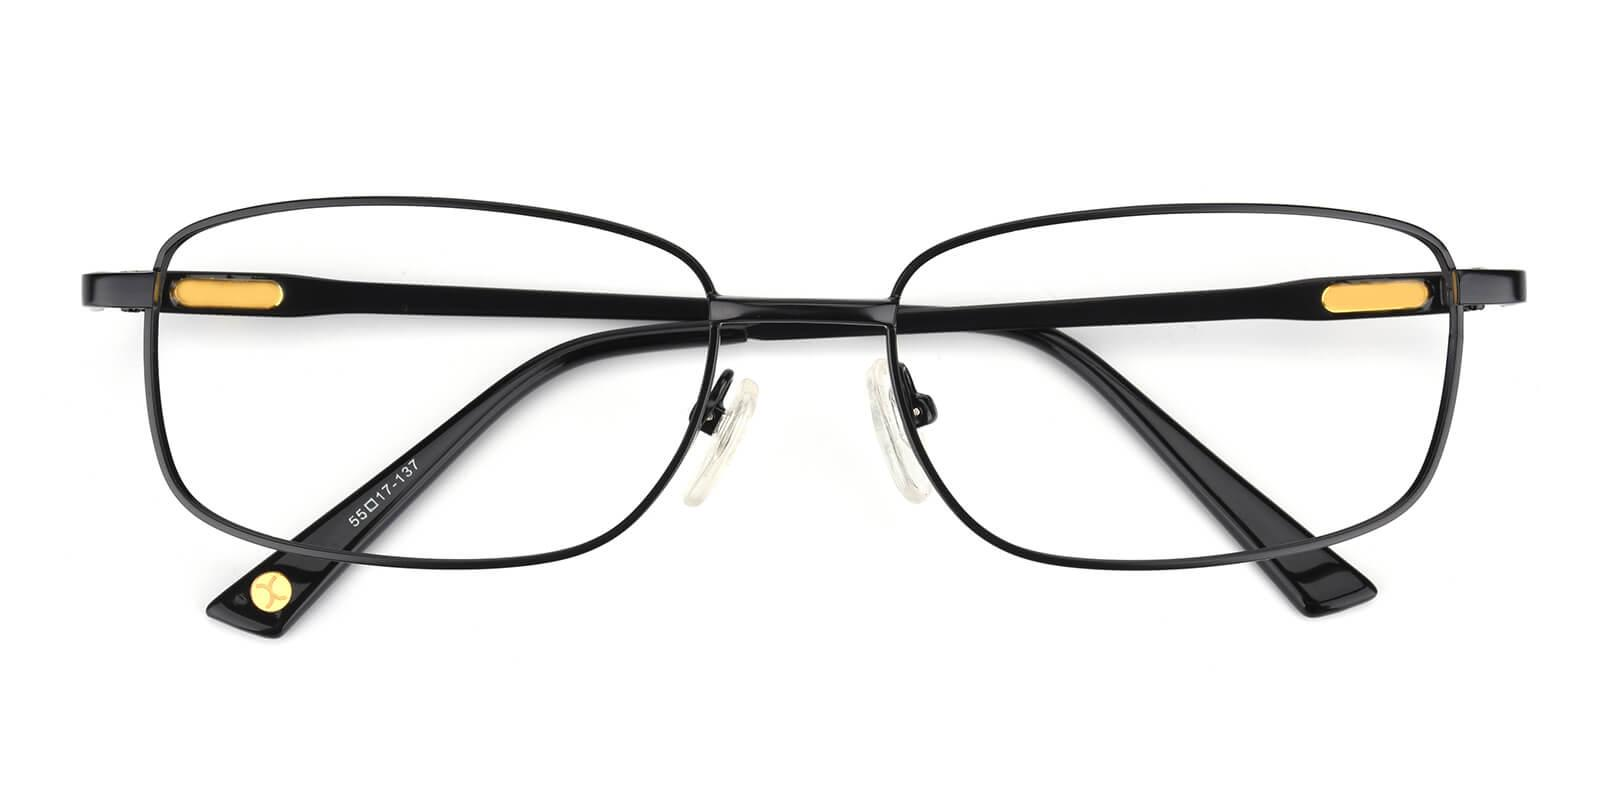 Michelly-Black-Rectangle-Metal-Eyeglasses-detail